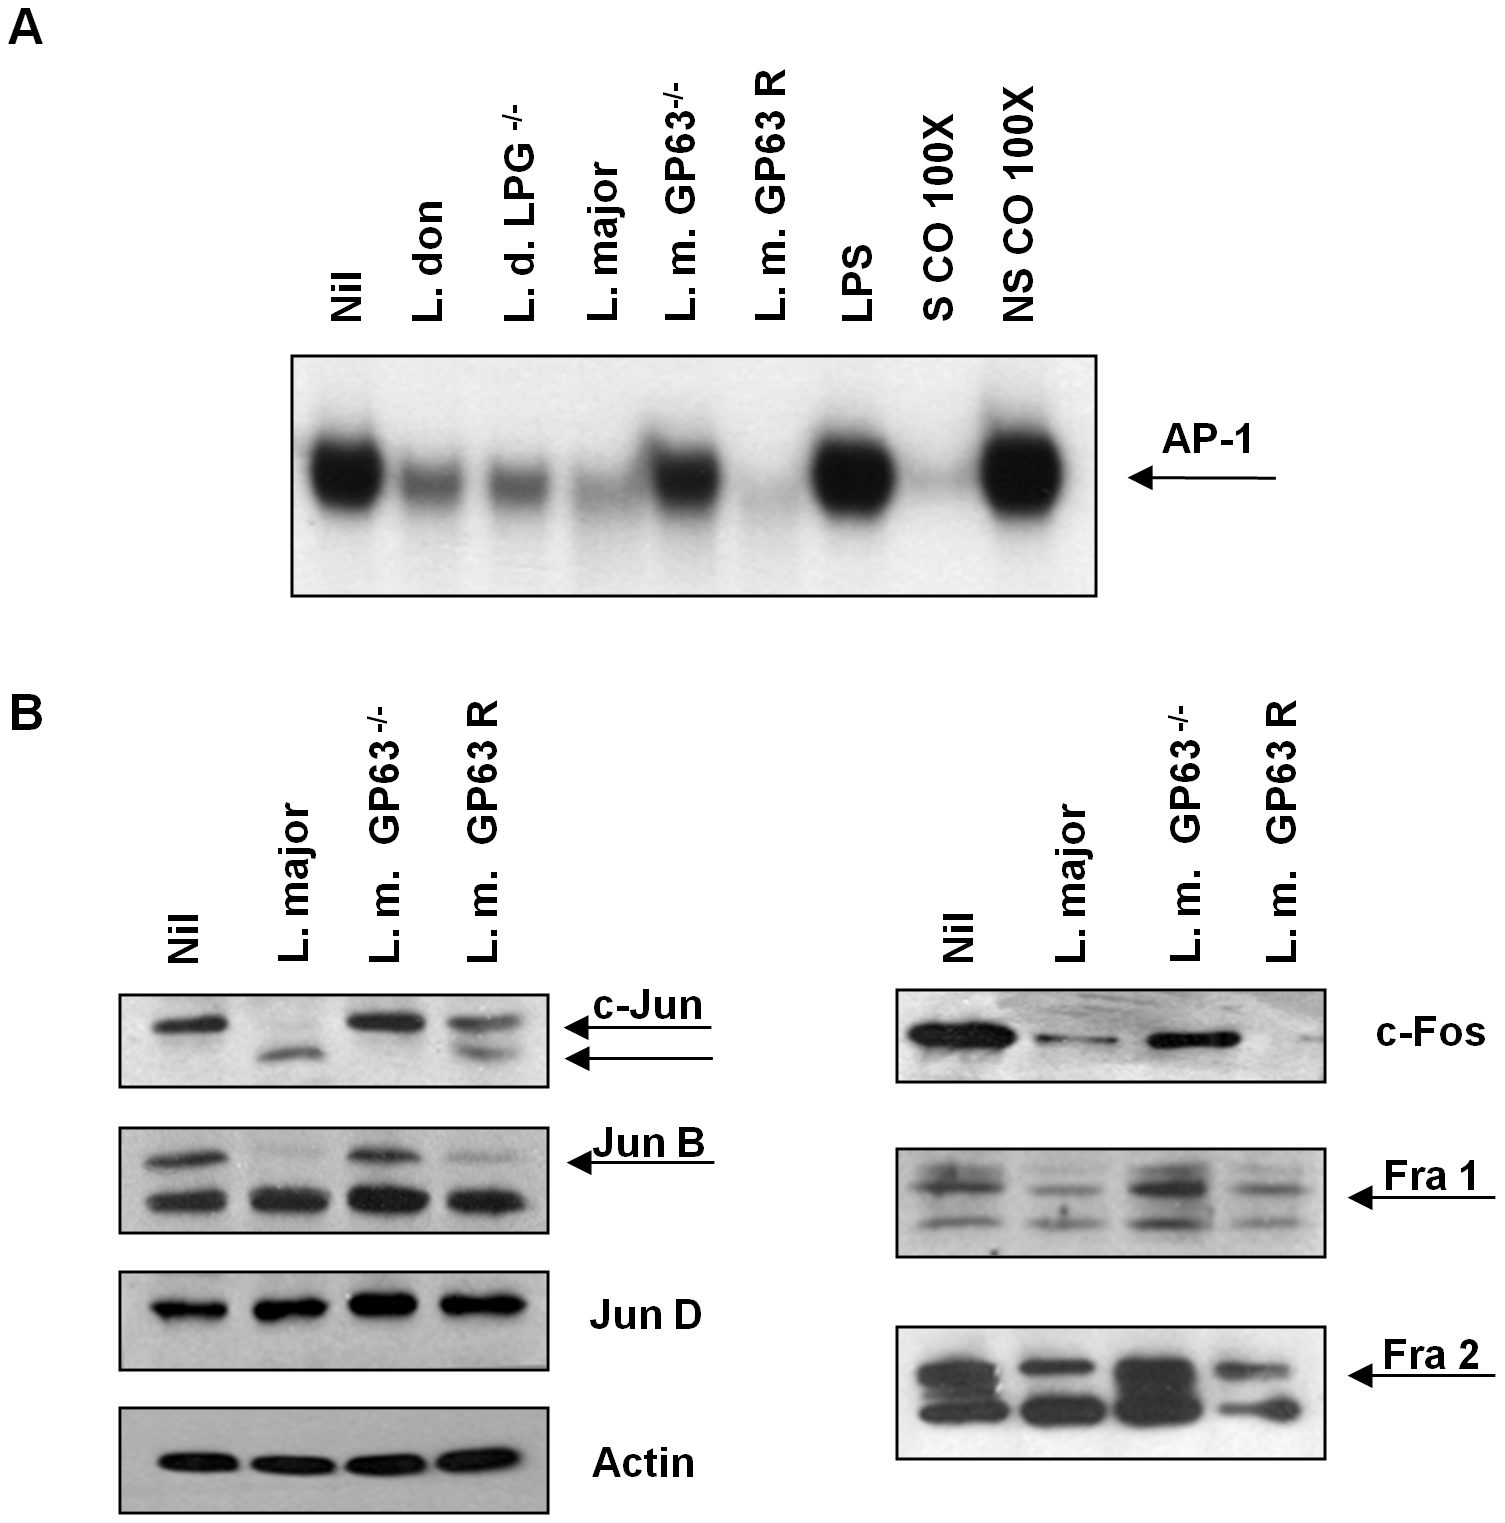 Role of <i>Leishmania</i> surface molecules in the inactivation of AP-1.